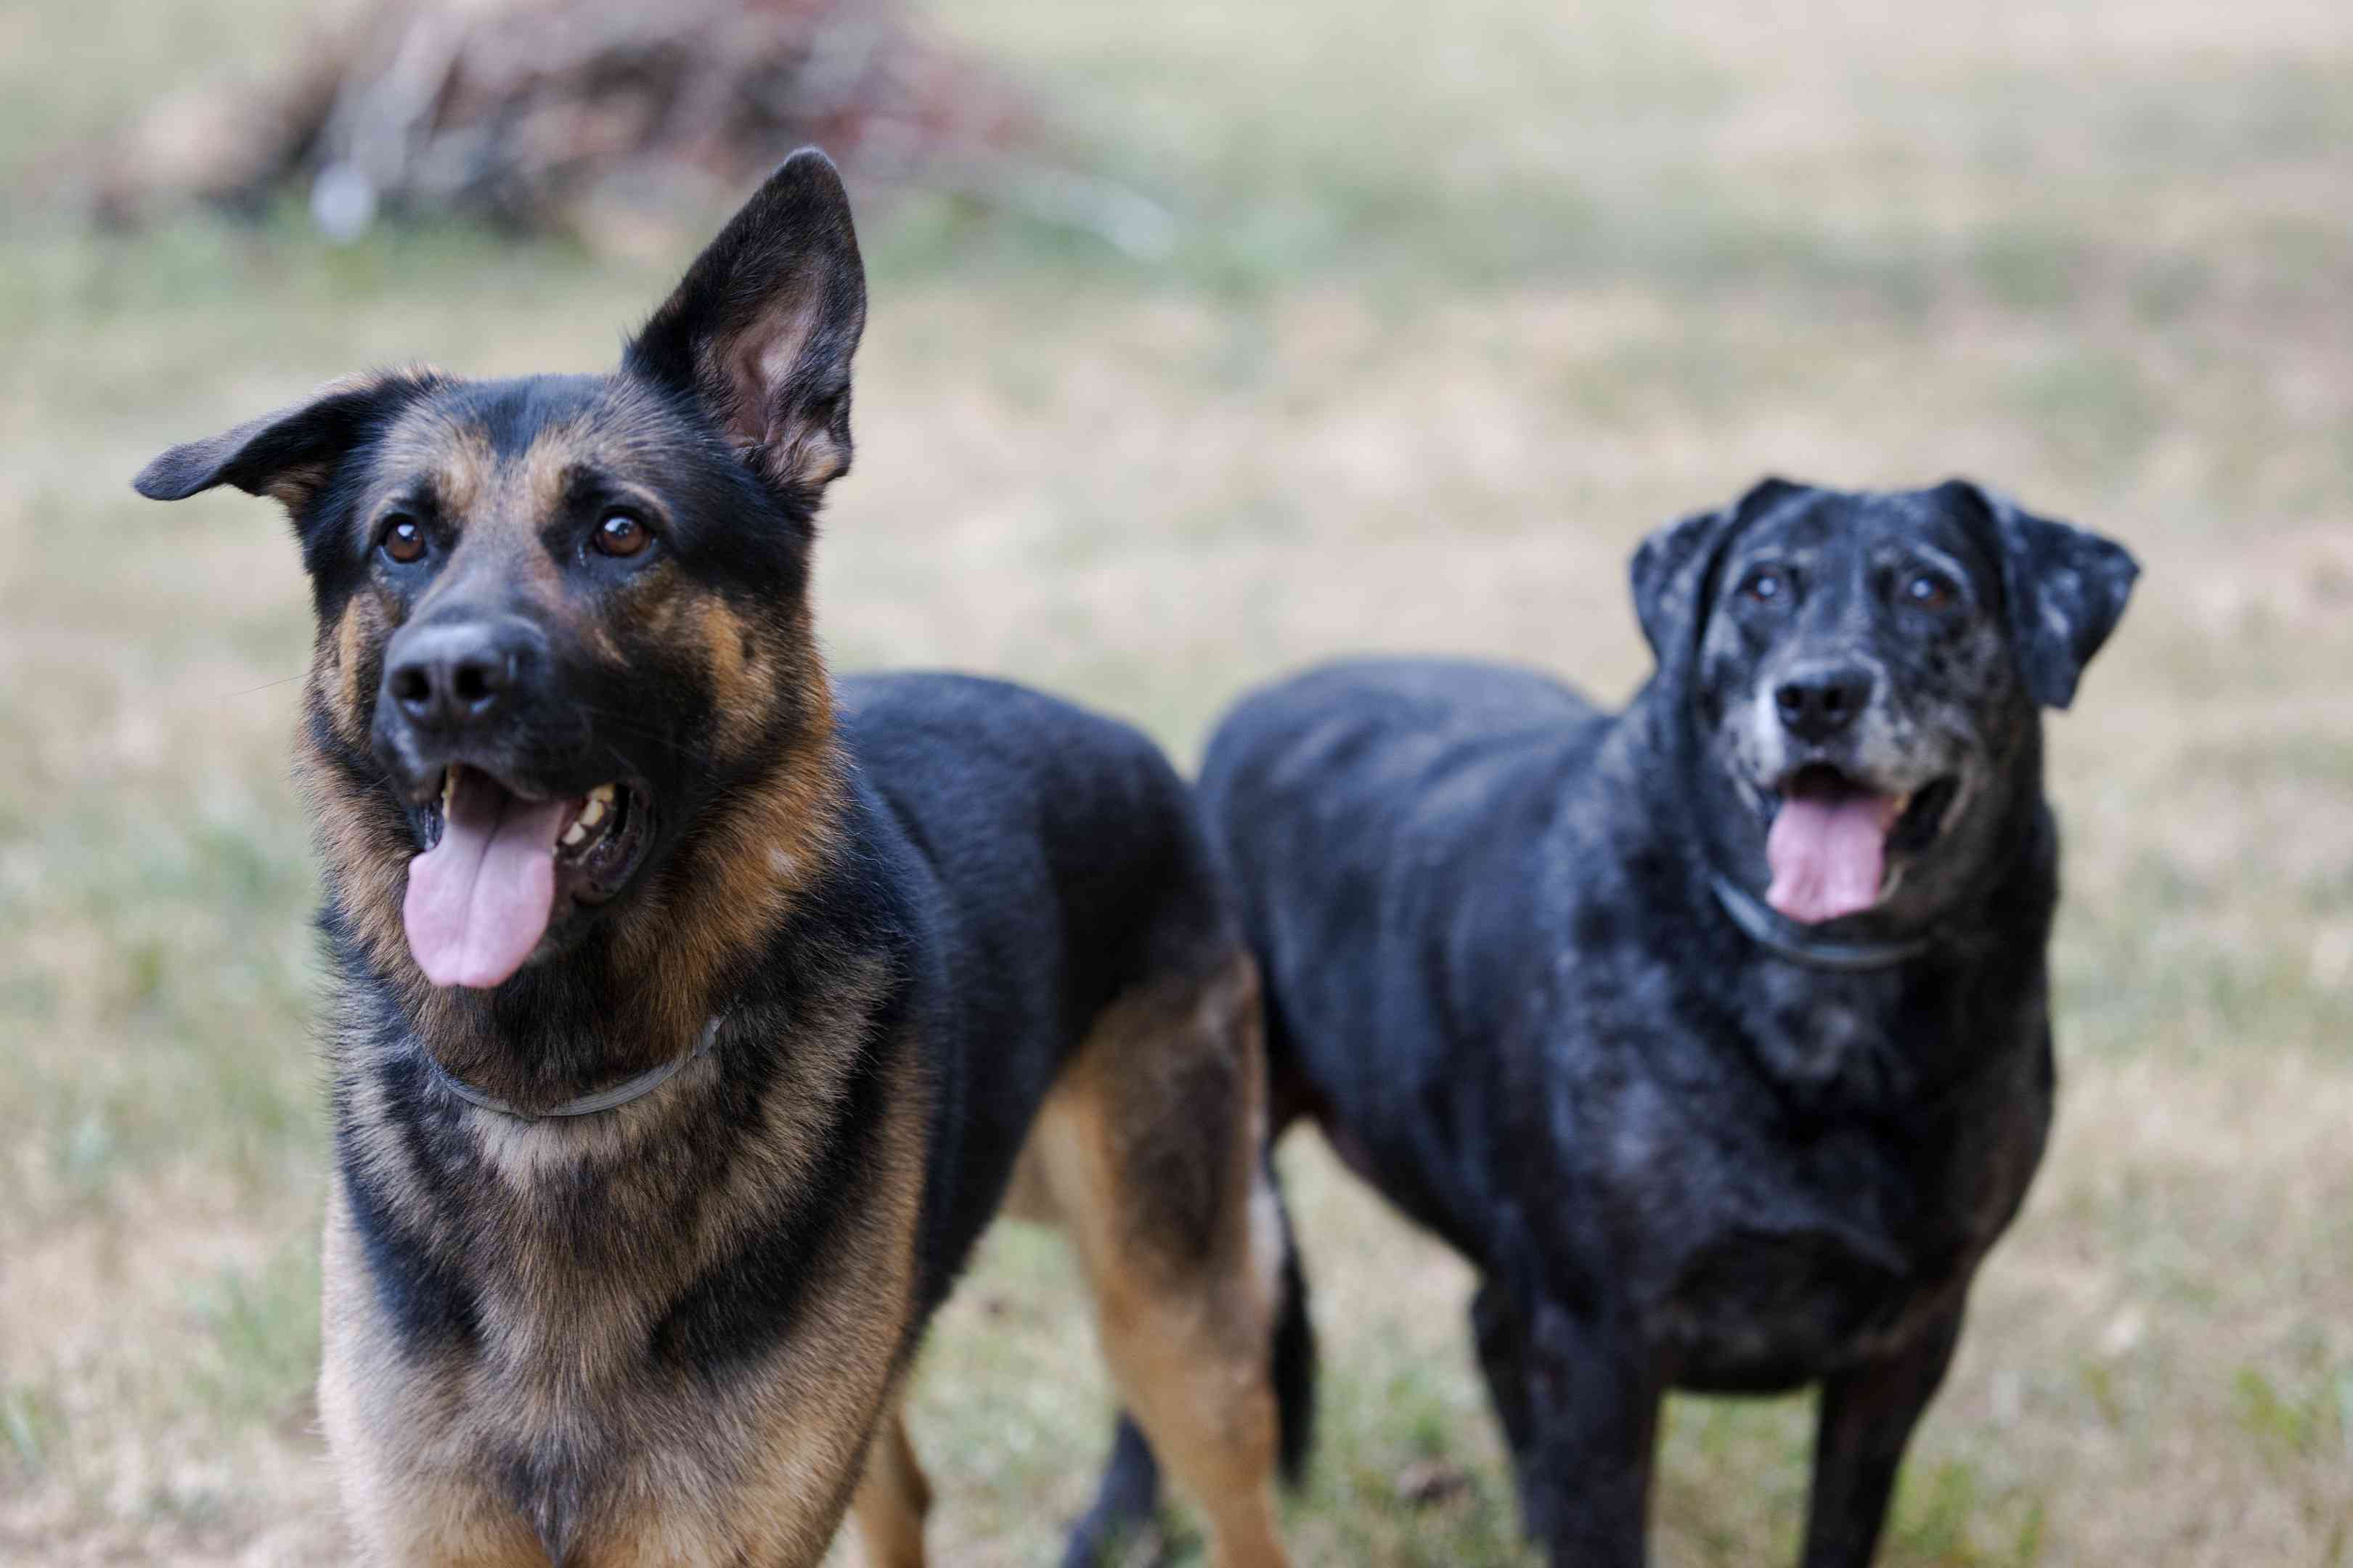 German Shepherd dog and older black dog outside with tongues hanging out